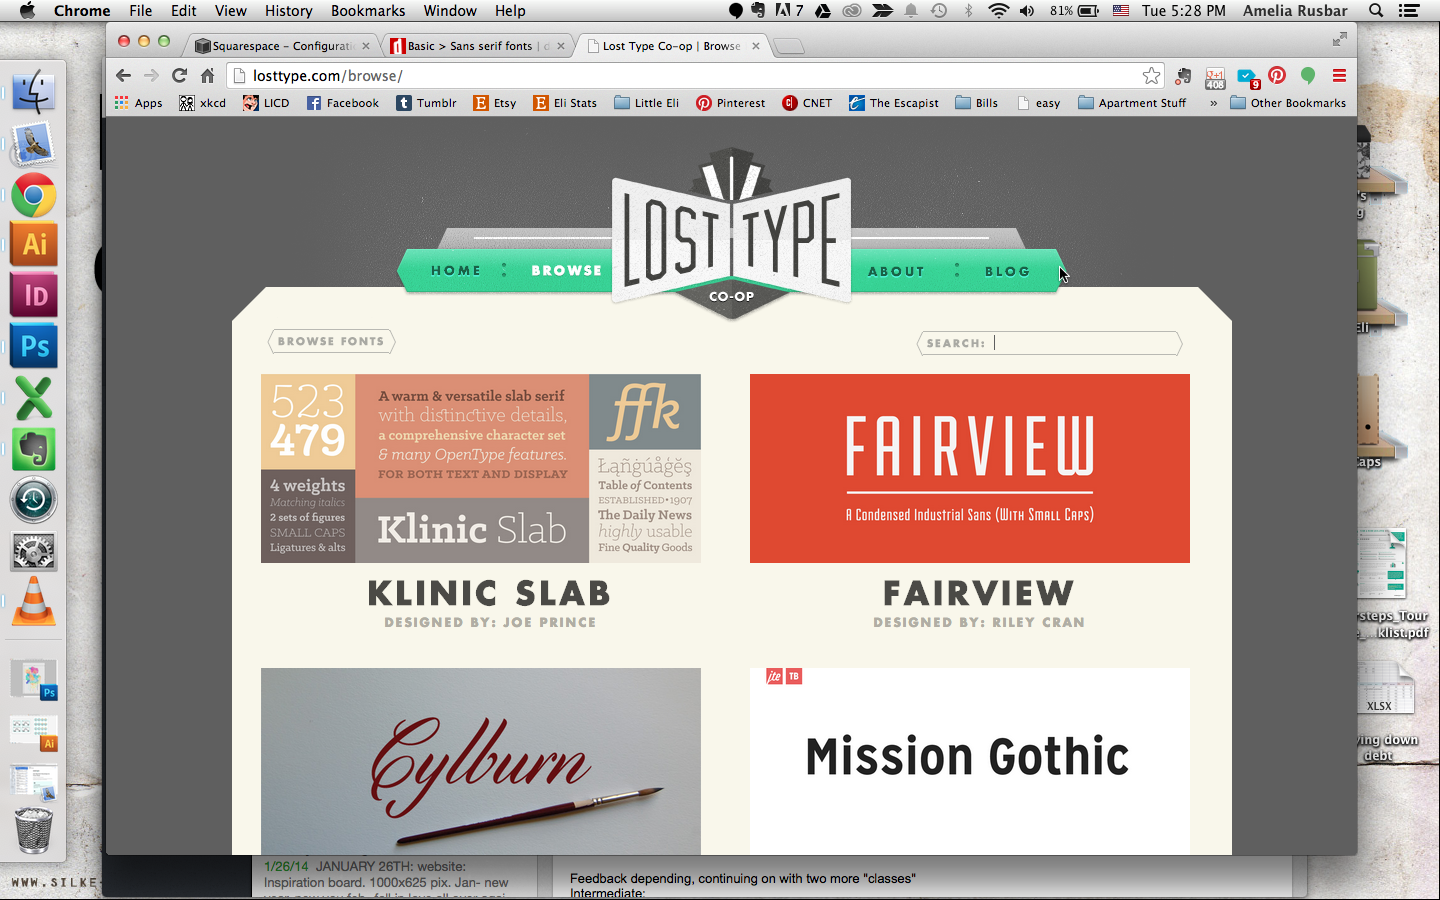 Lost Type - This website is run by a team of designers, so naturally it has some really fantastic fonts! The fonts are really well put together and professional. And it's donation based, so you can pay however much you feel appropriate for the font you love, with all the money going directly to the designers! It's great when you don't have a ton of money to invest in a project, but still want professional results.